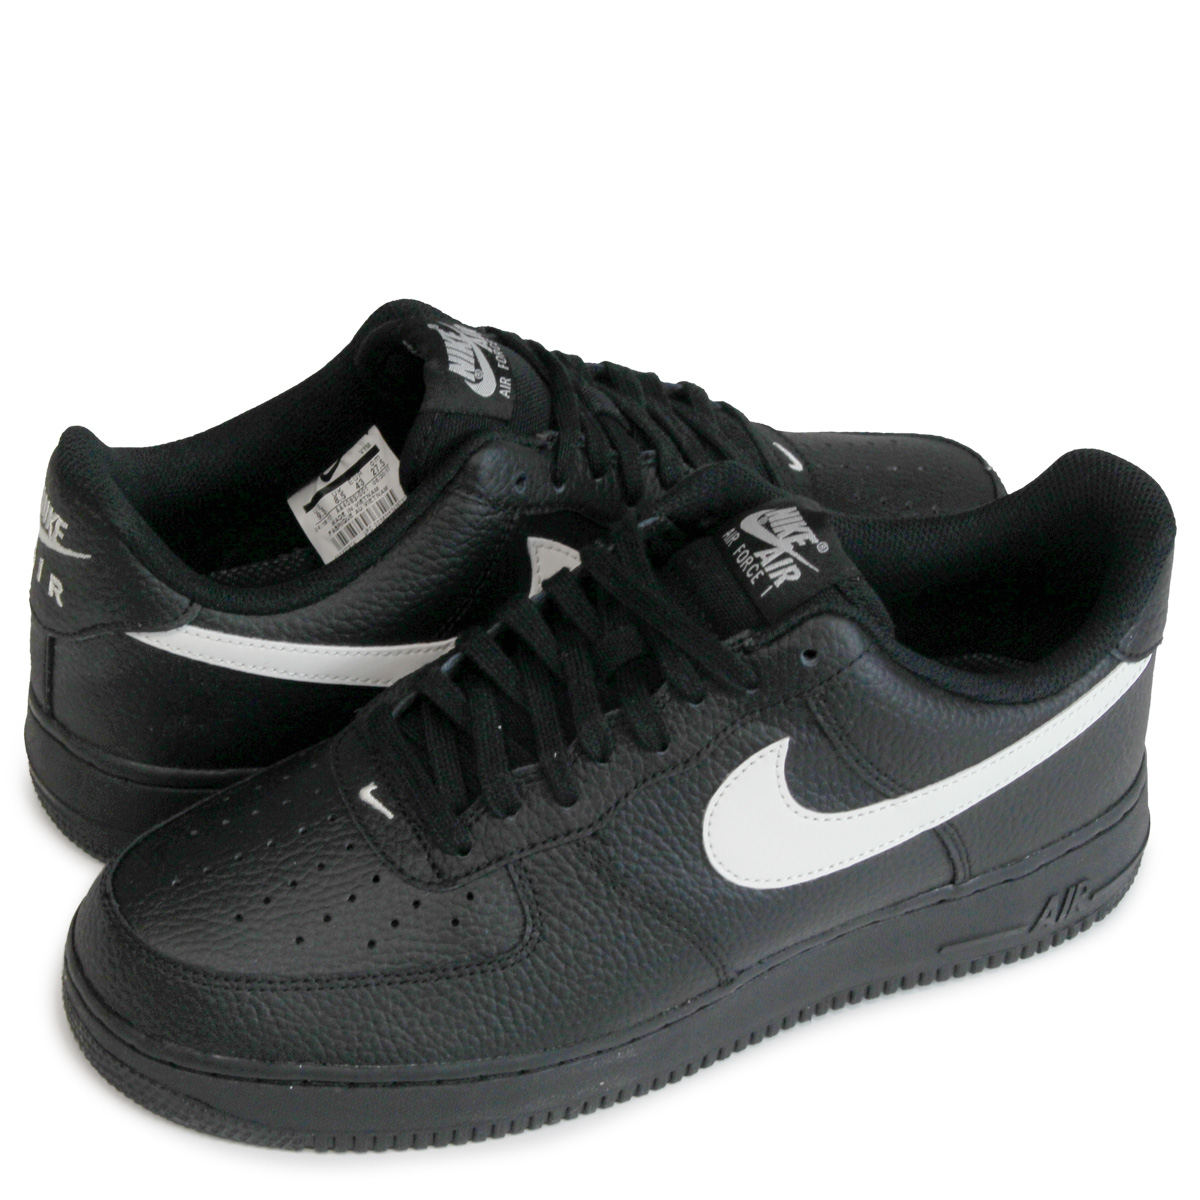 NIKE AIR FORCE 1 Nike air force 1 07 sneakers AA4083 001 men shoes black [load planned Shinnyu load in reservation product 1019 containing] [1710]